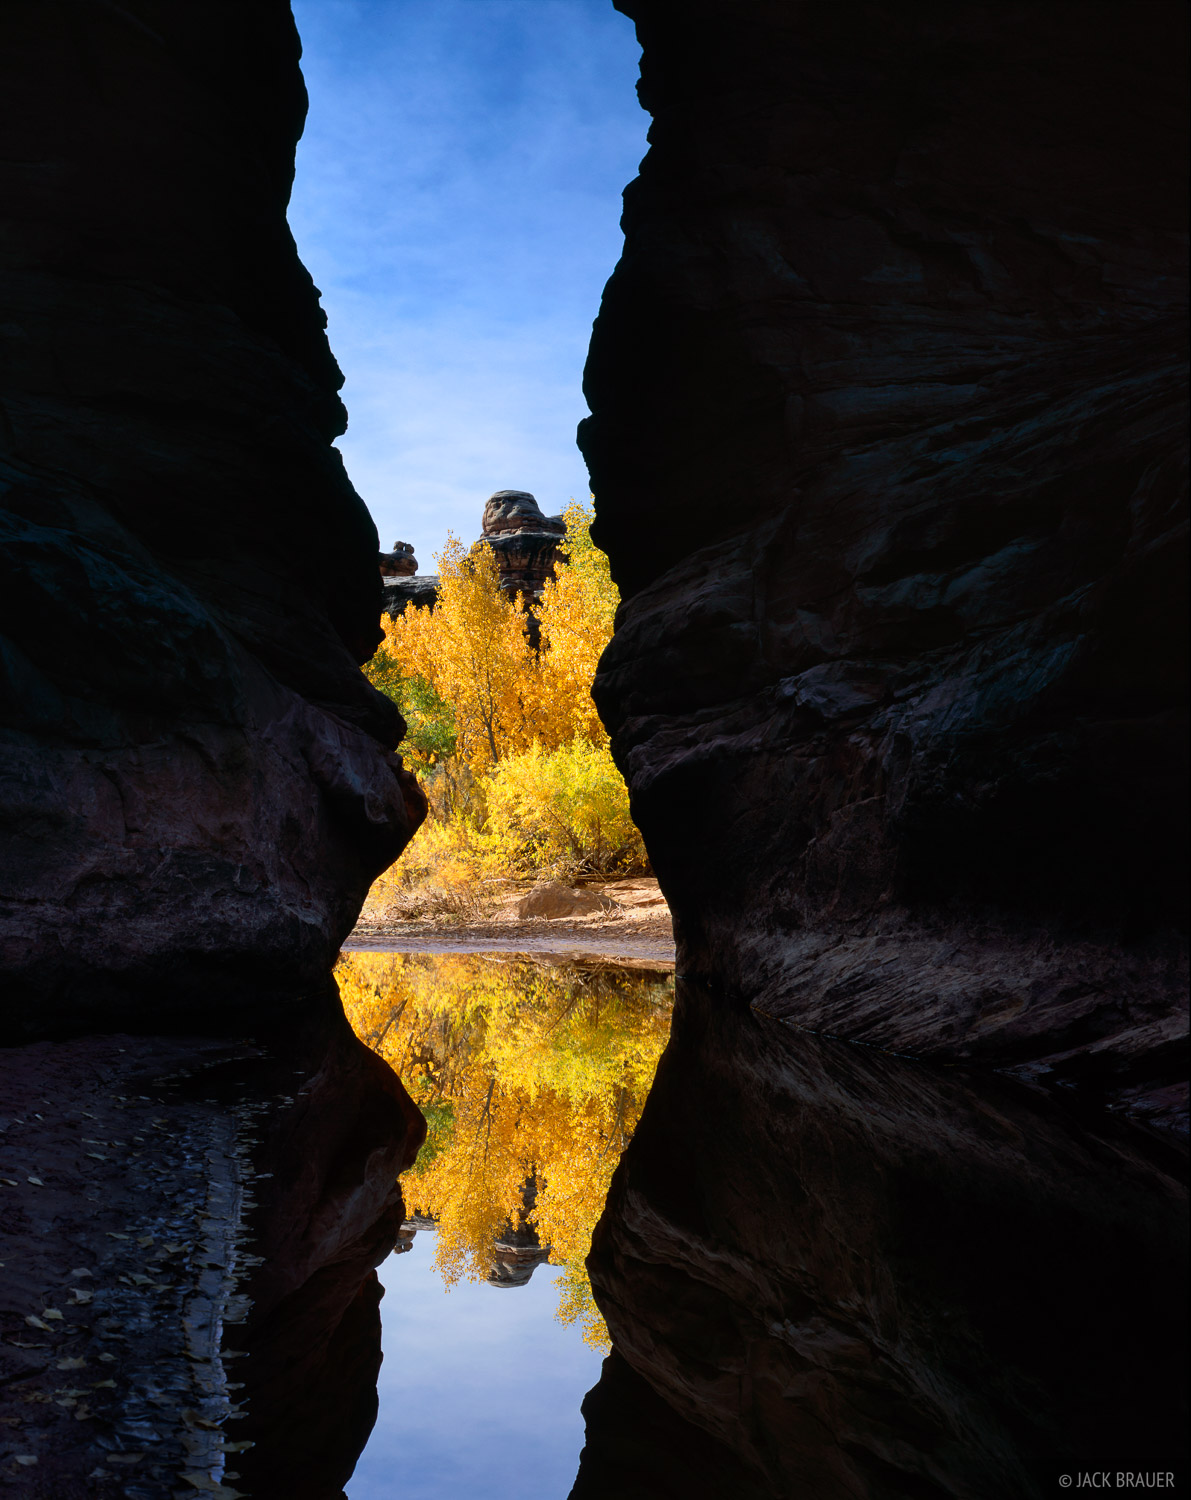 Grand Gulch, Narrows, Cedar Mesa, Utah, Bears Ears National Monument, photo